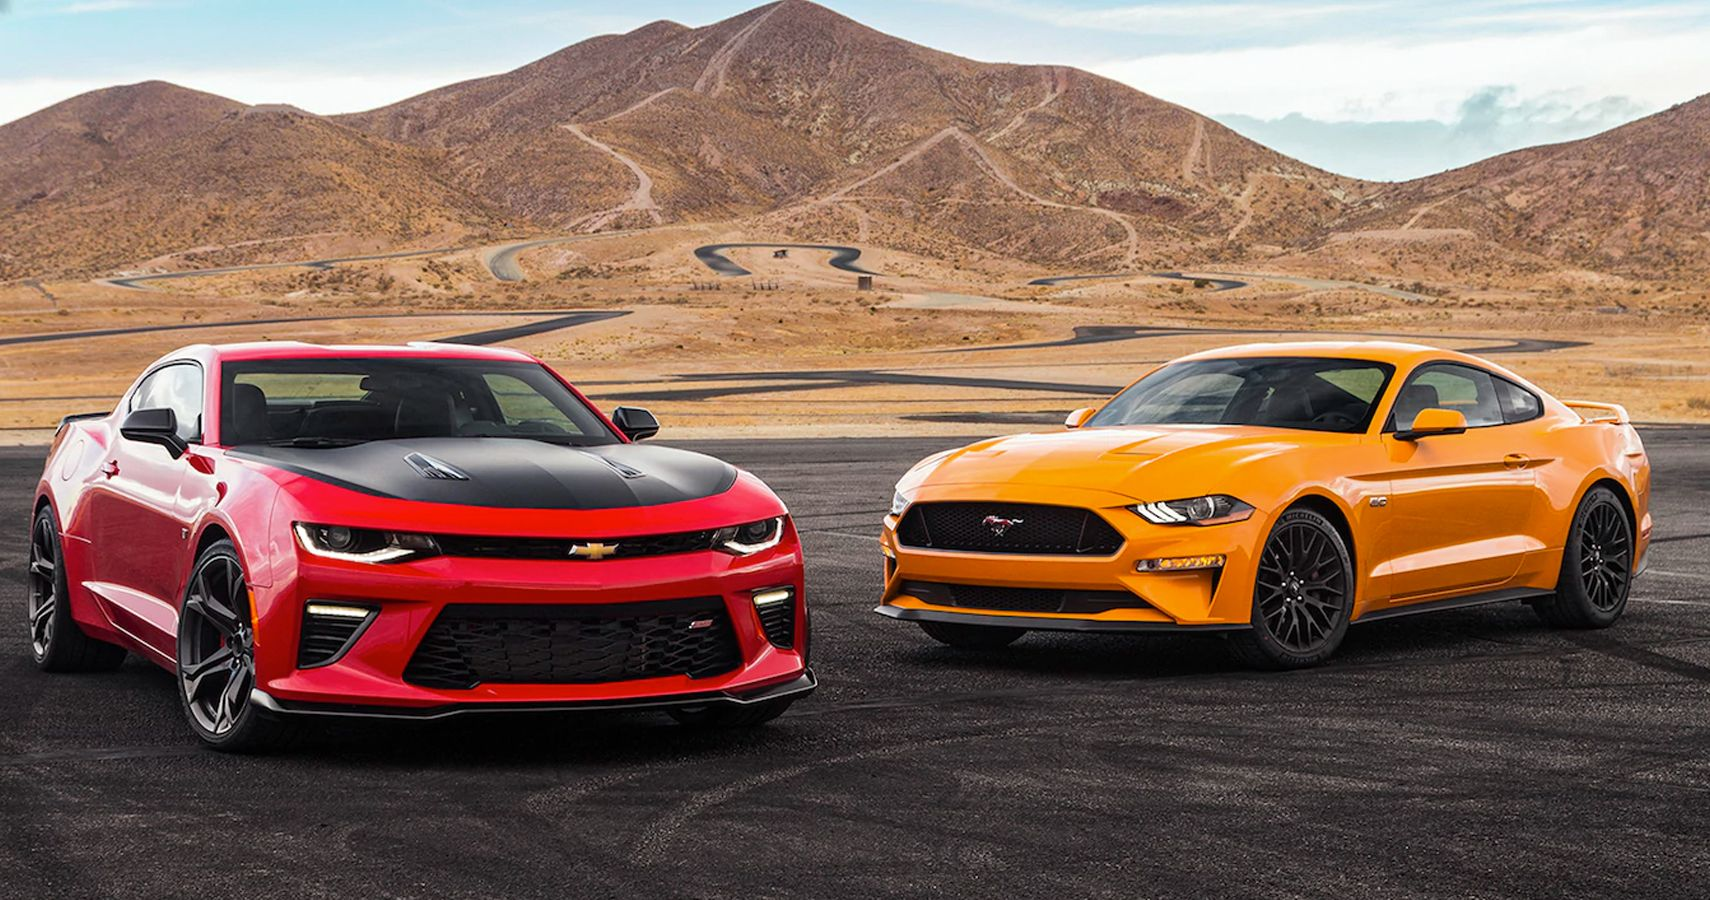 Chevrolet Camaro Ss Versus Ford Mustang Gt Which Is Better